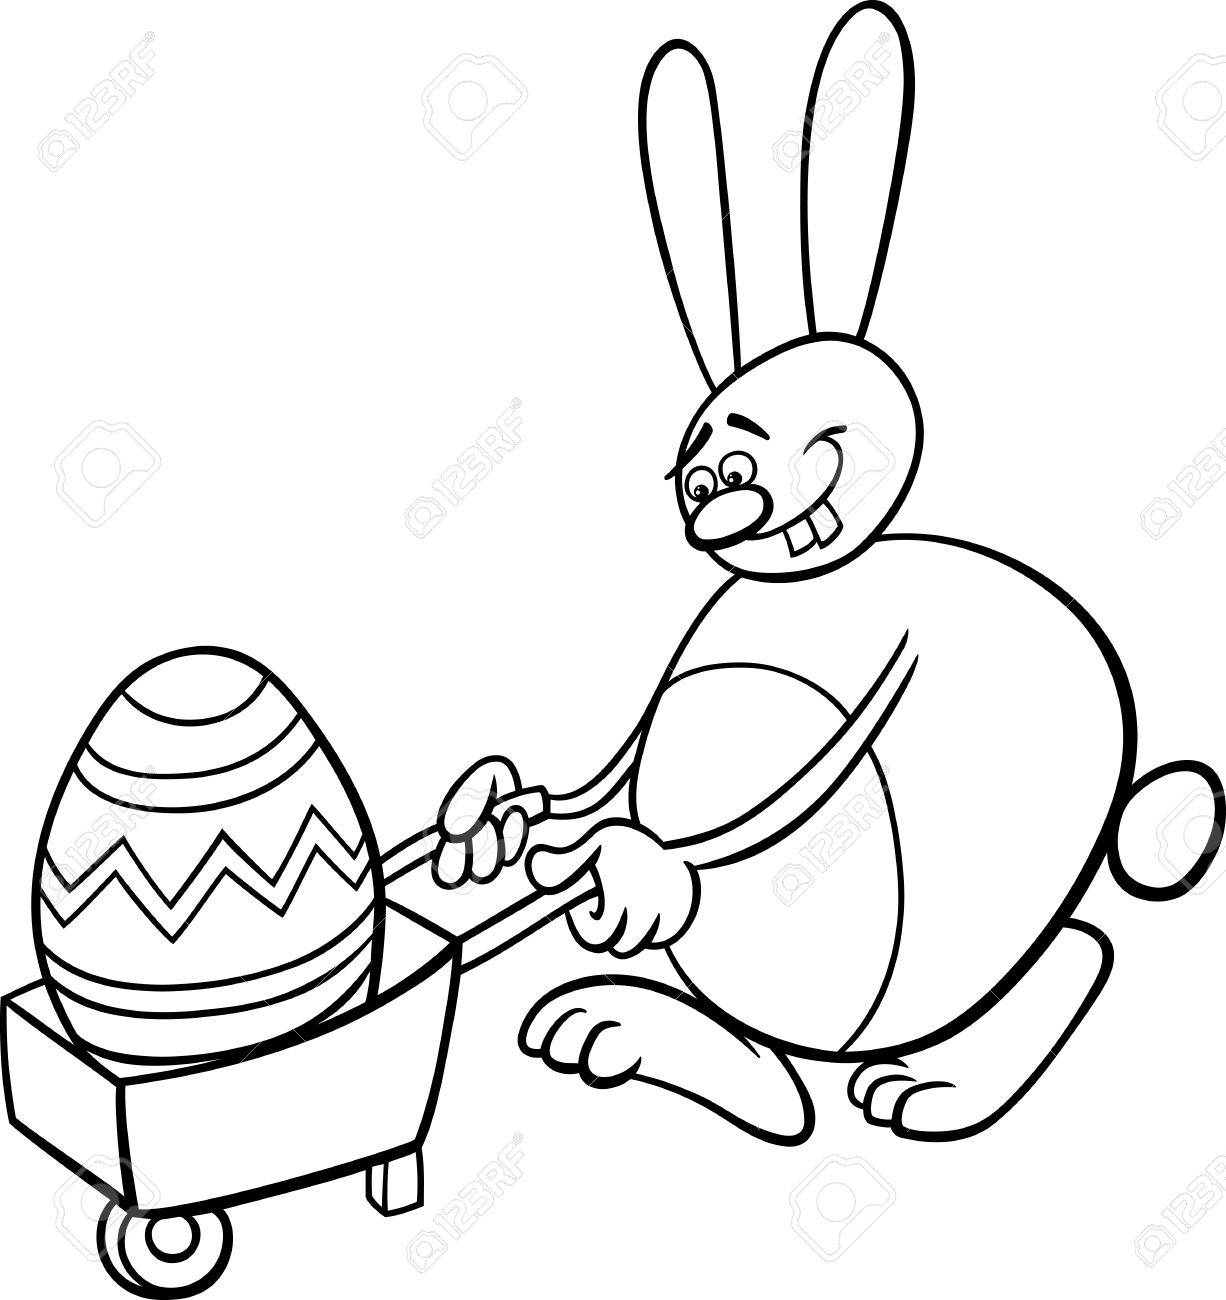 Black And White Cartoon Illustration Of Funny Easter Bunny With Big Egg On Wheelbarrow For Coloring